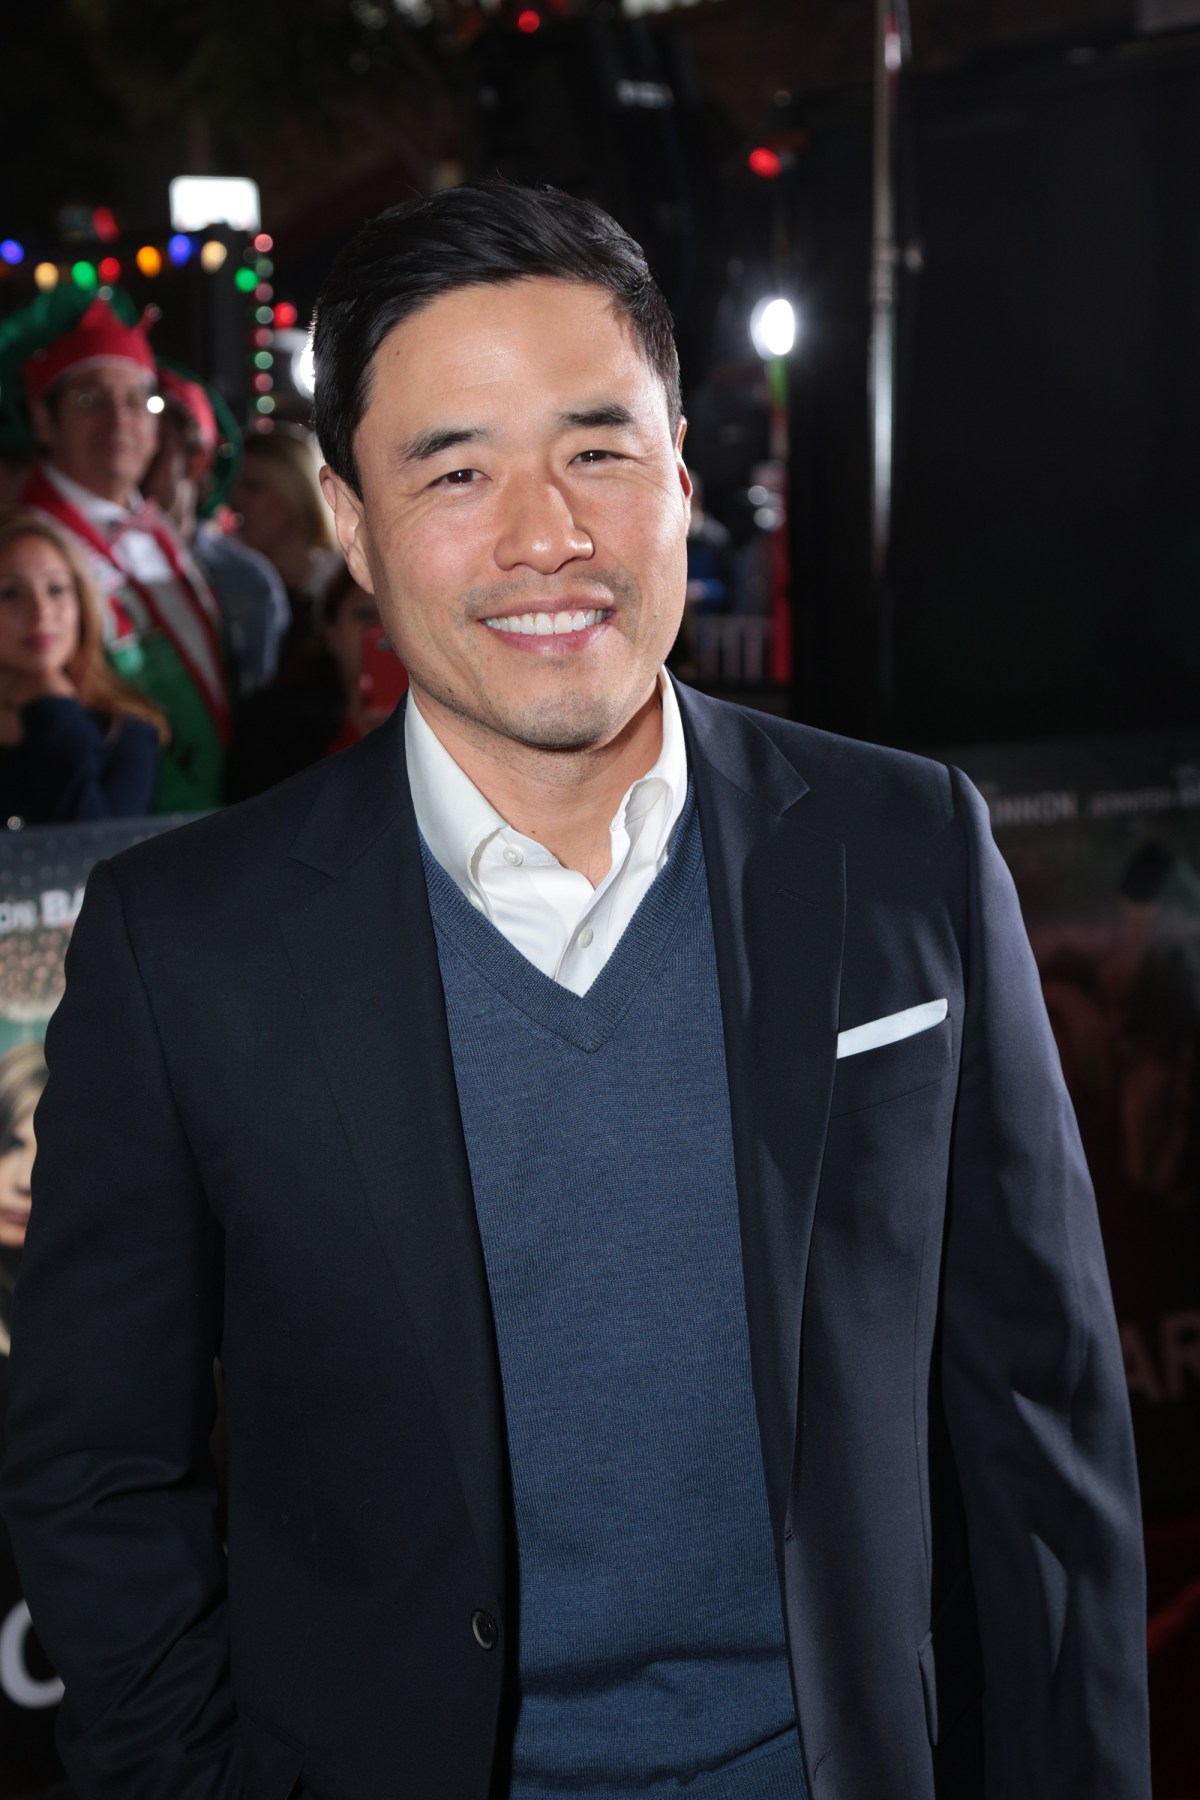 """Randall Park poses as Paramount Pictures presents the Los Angeles premiere of """"Office Christmas Party"""" at the Regency Village Theater in Los Angeles, CA on Wednesday, December 7, 2016  (Photo: Alex J. Berliner / ABImages)"""